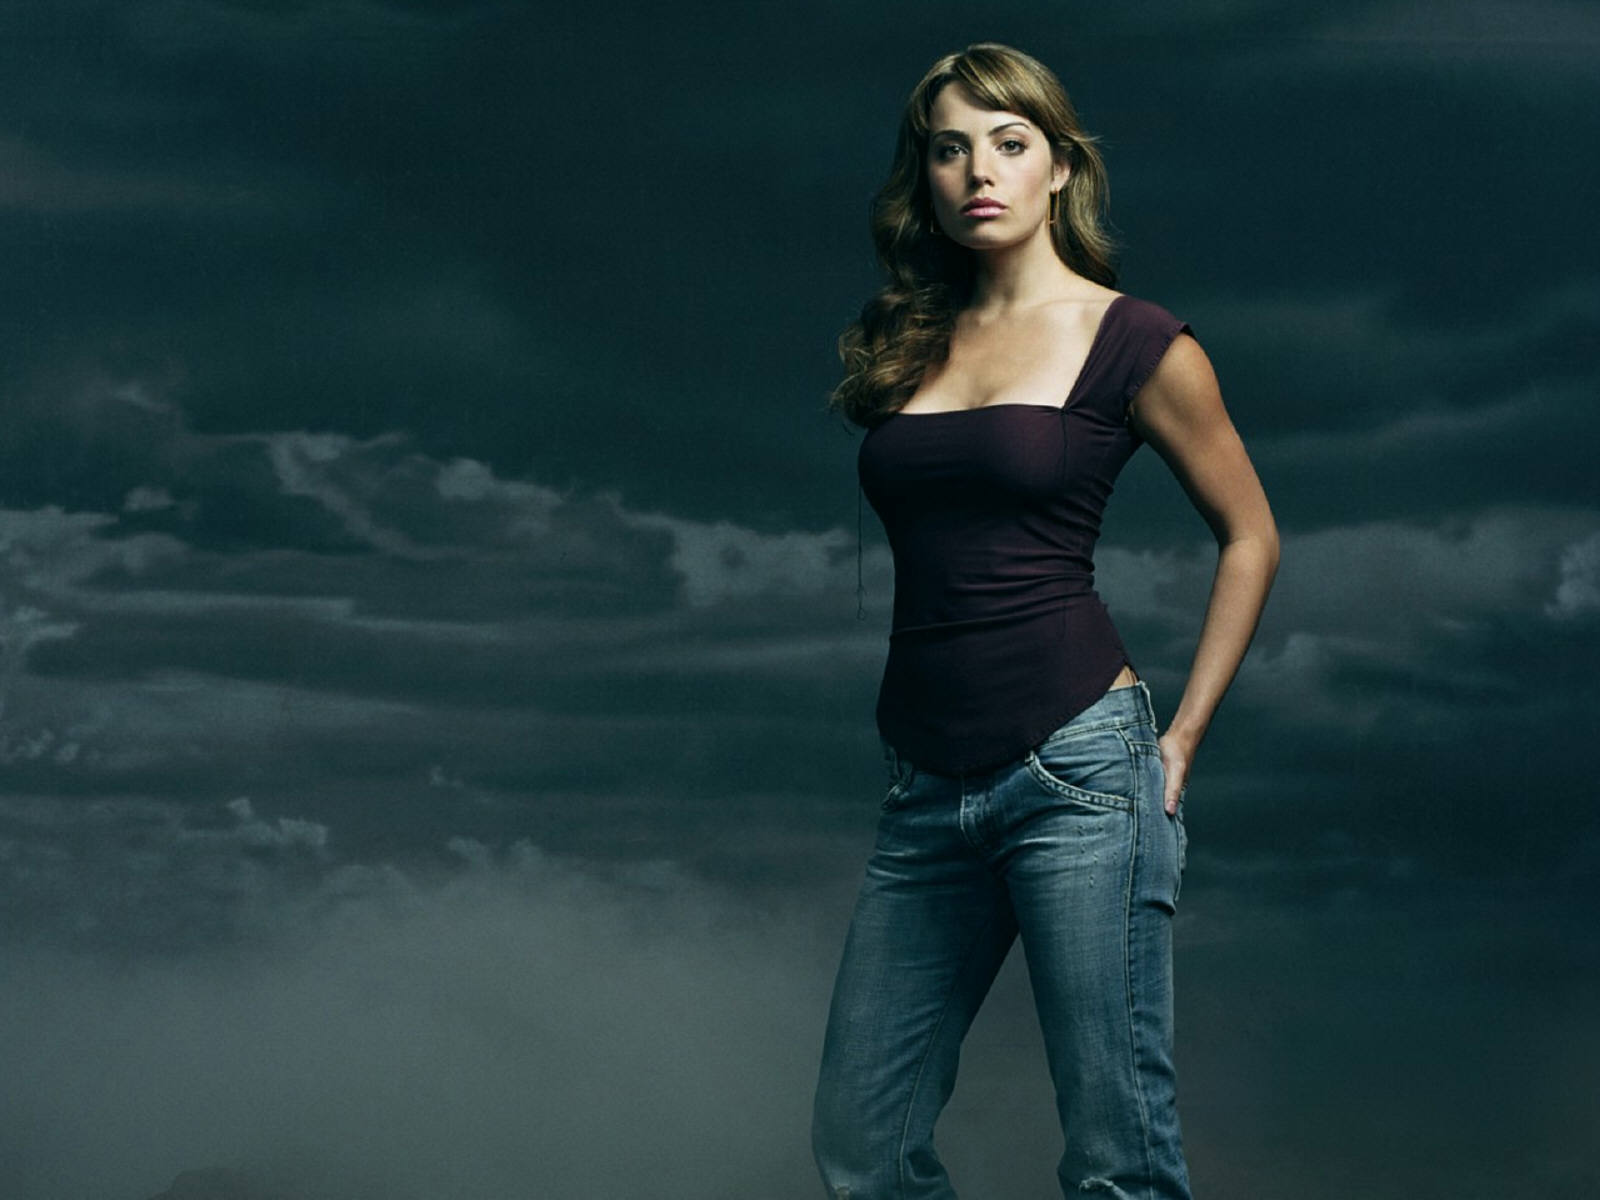 erica durance images wallpaper - photo #1